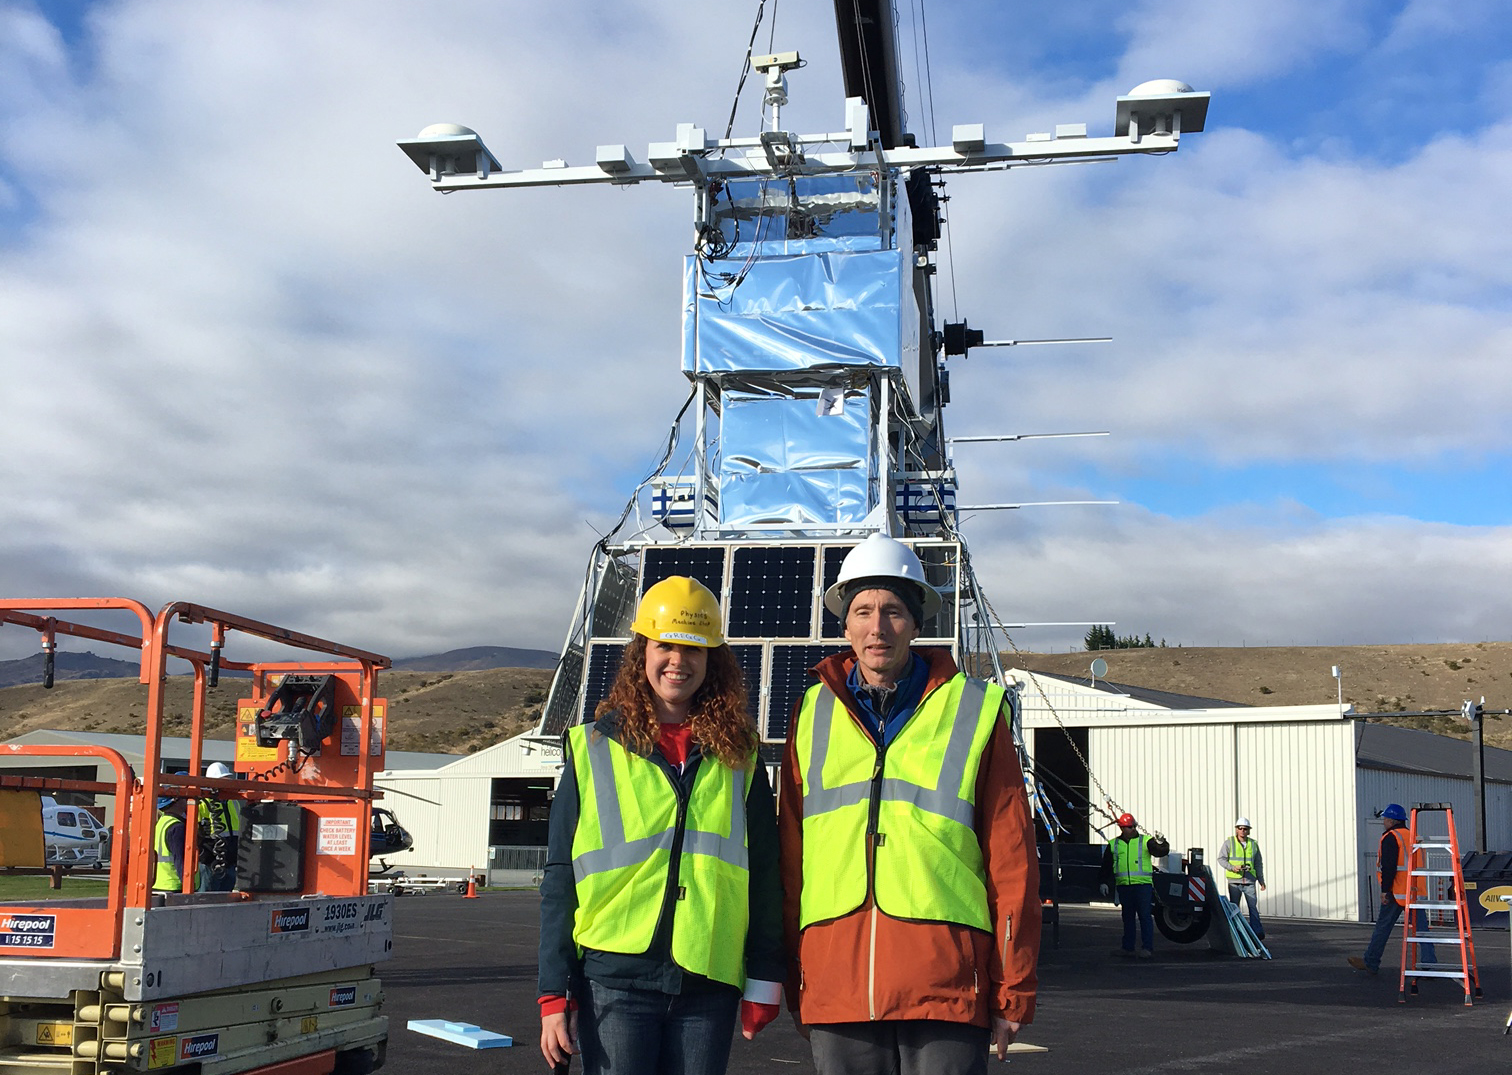 Rachel Gregg and Lawrence Wiencke at the launch site in New Zealand